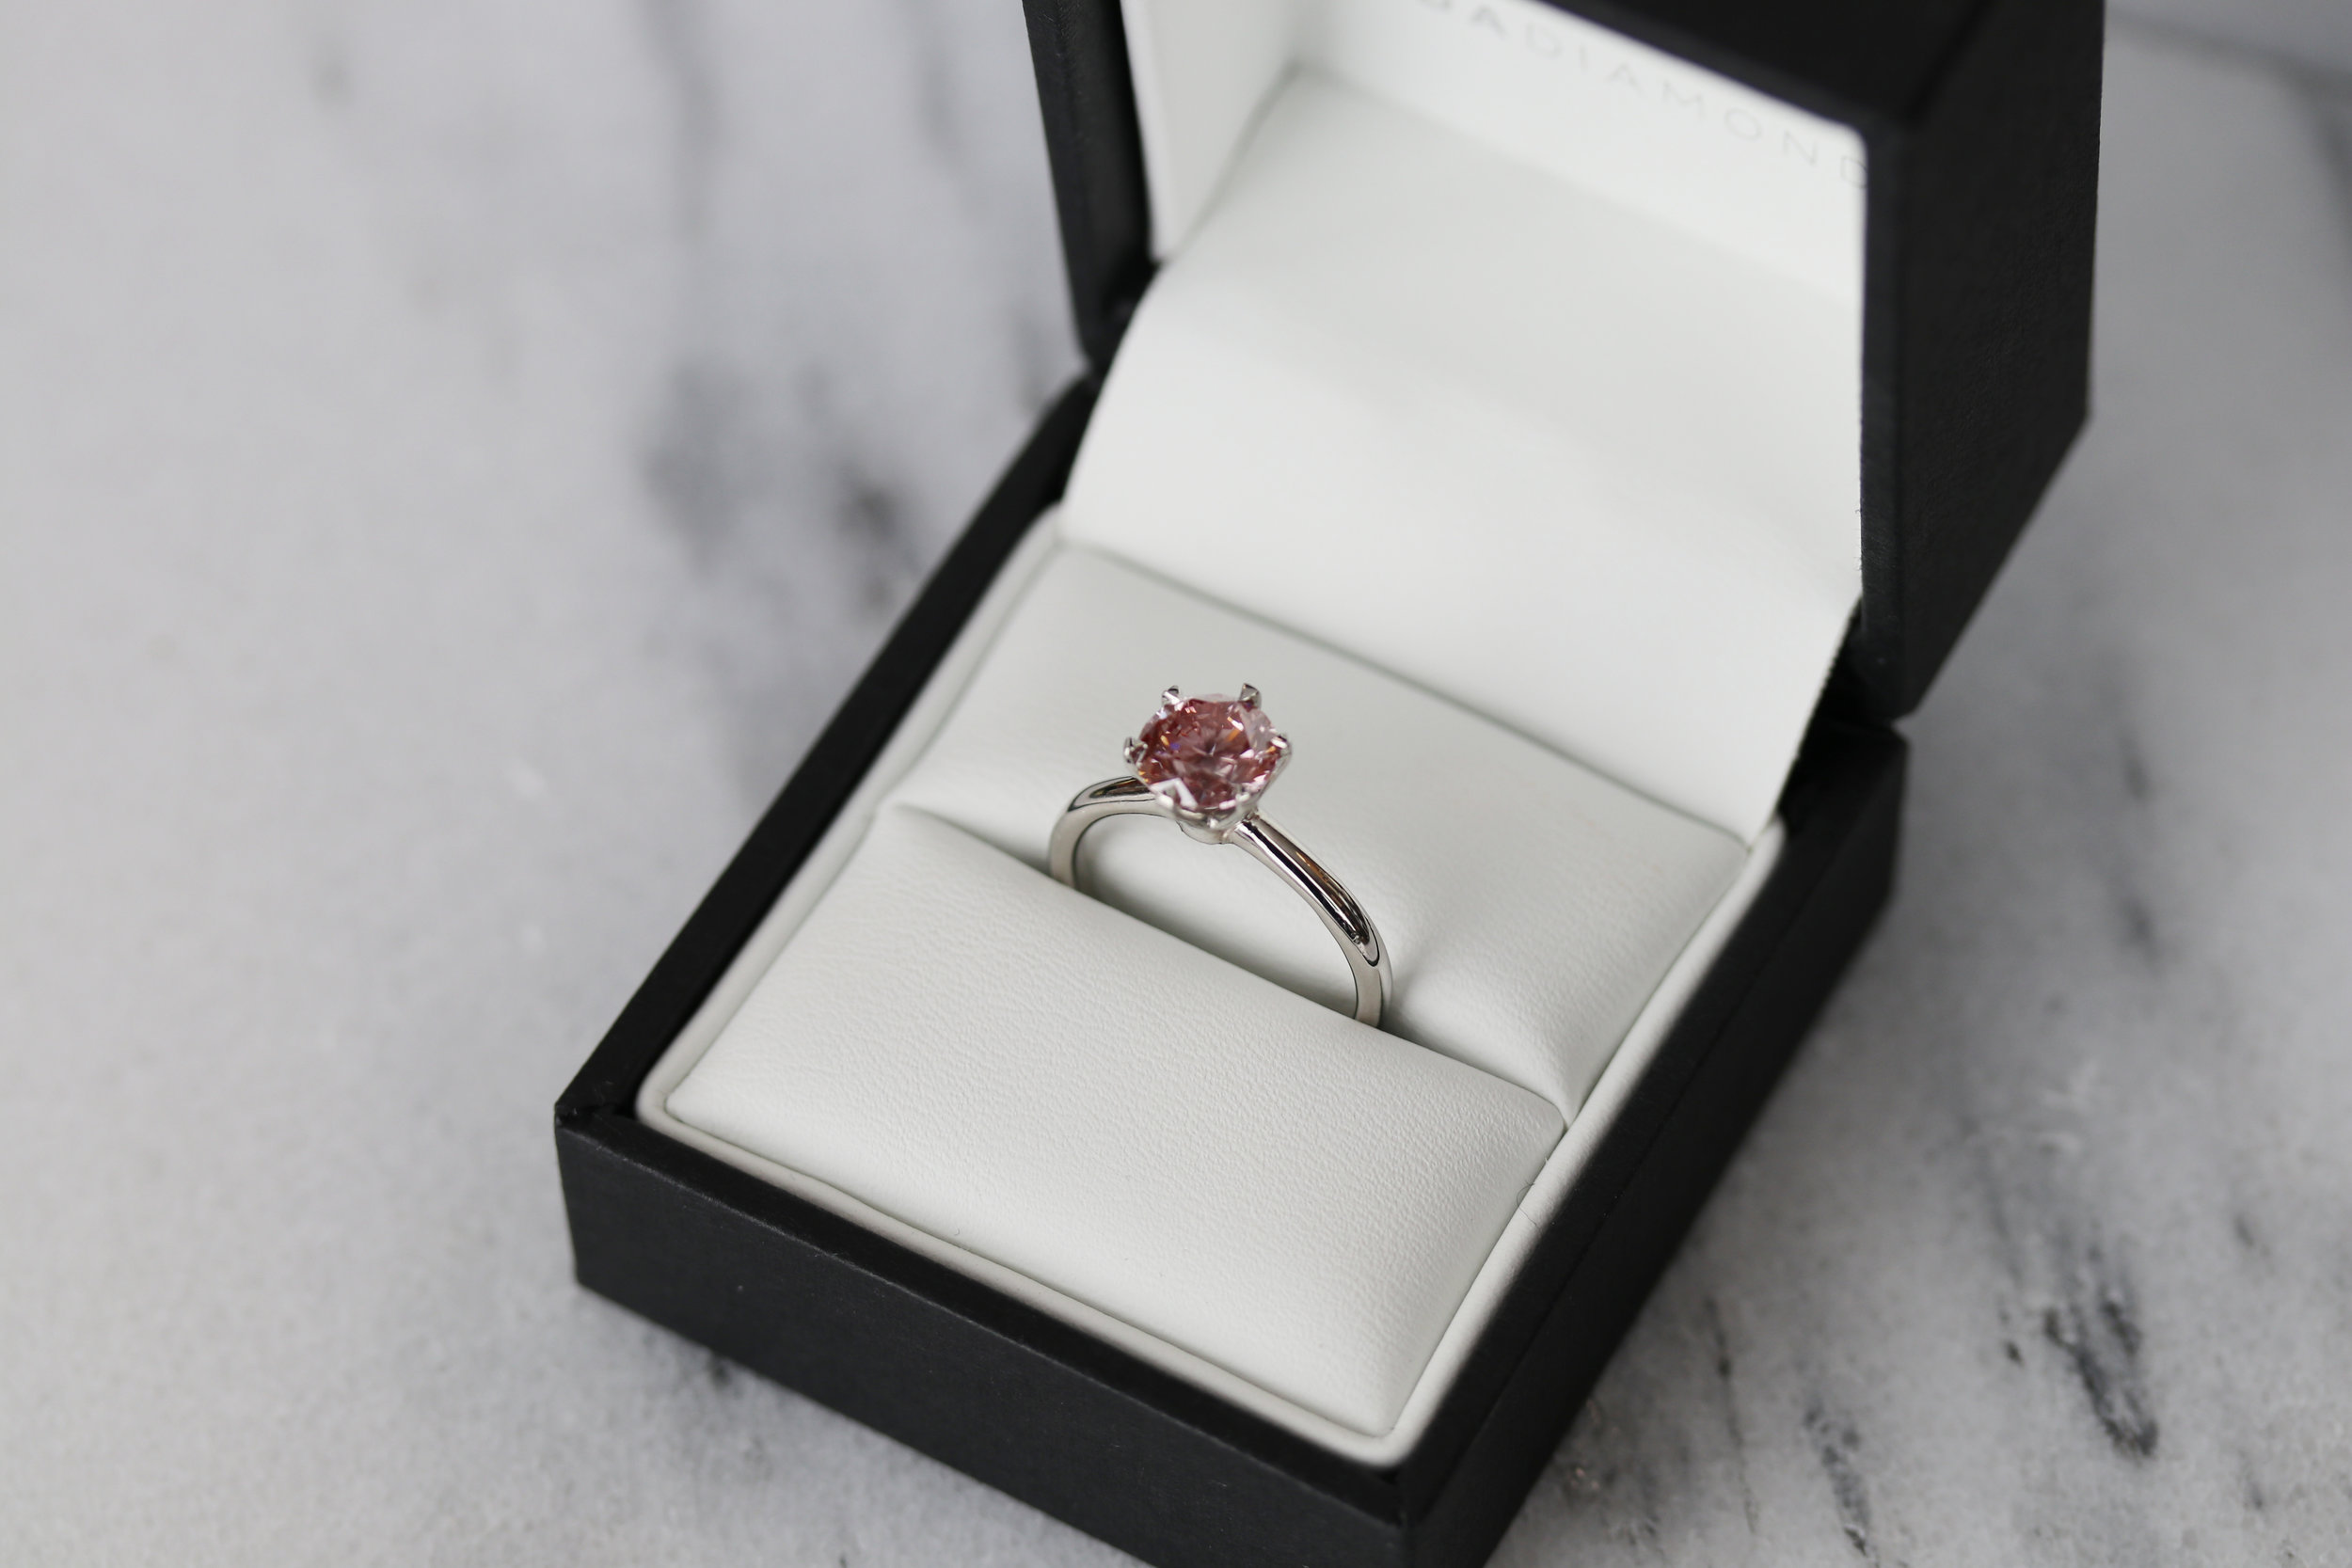 Fancy pink lab diamond six prong solitaire engagement ring in platinum